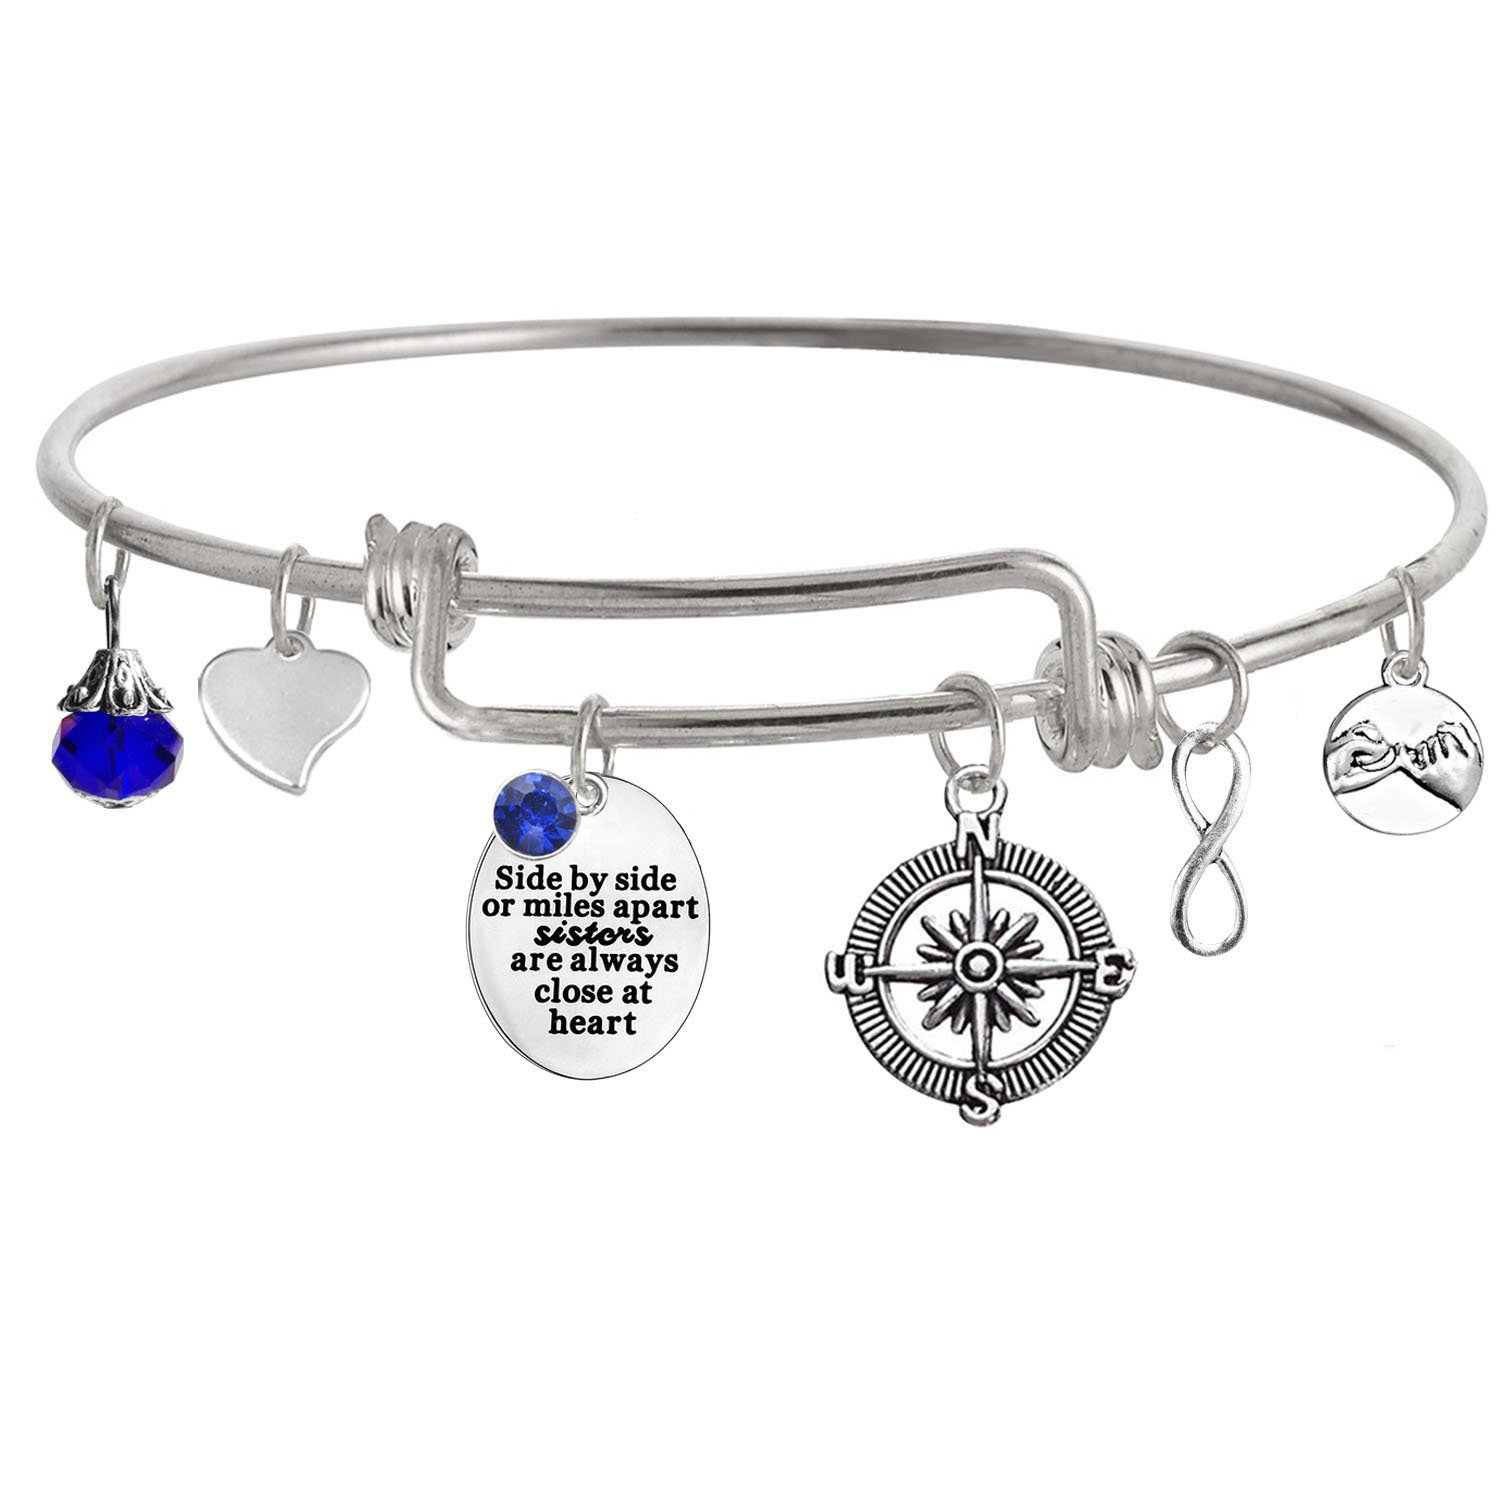 TISDA ''Side by side or miles apart sisters are always close at heart'' Expandable Wire Bangle Bracelets (I September)